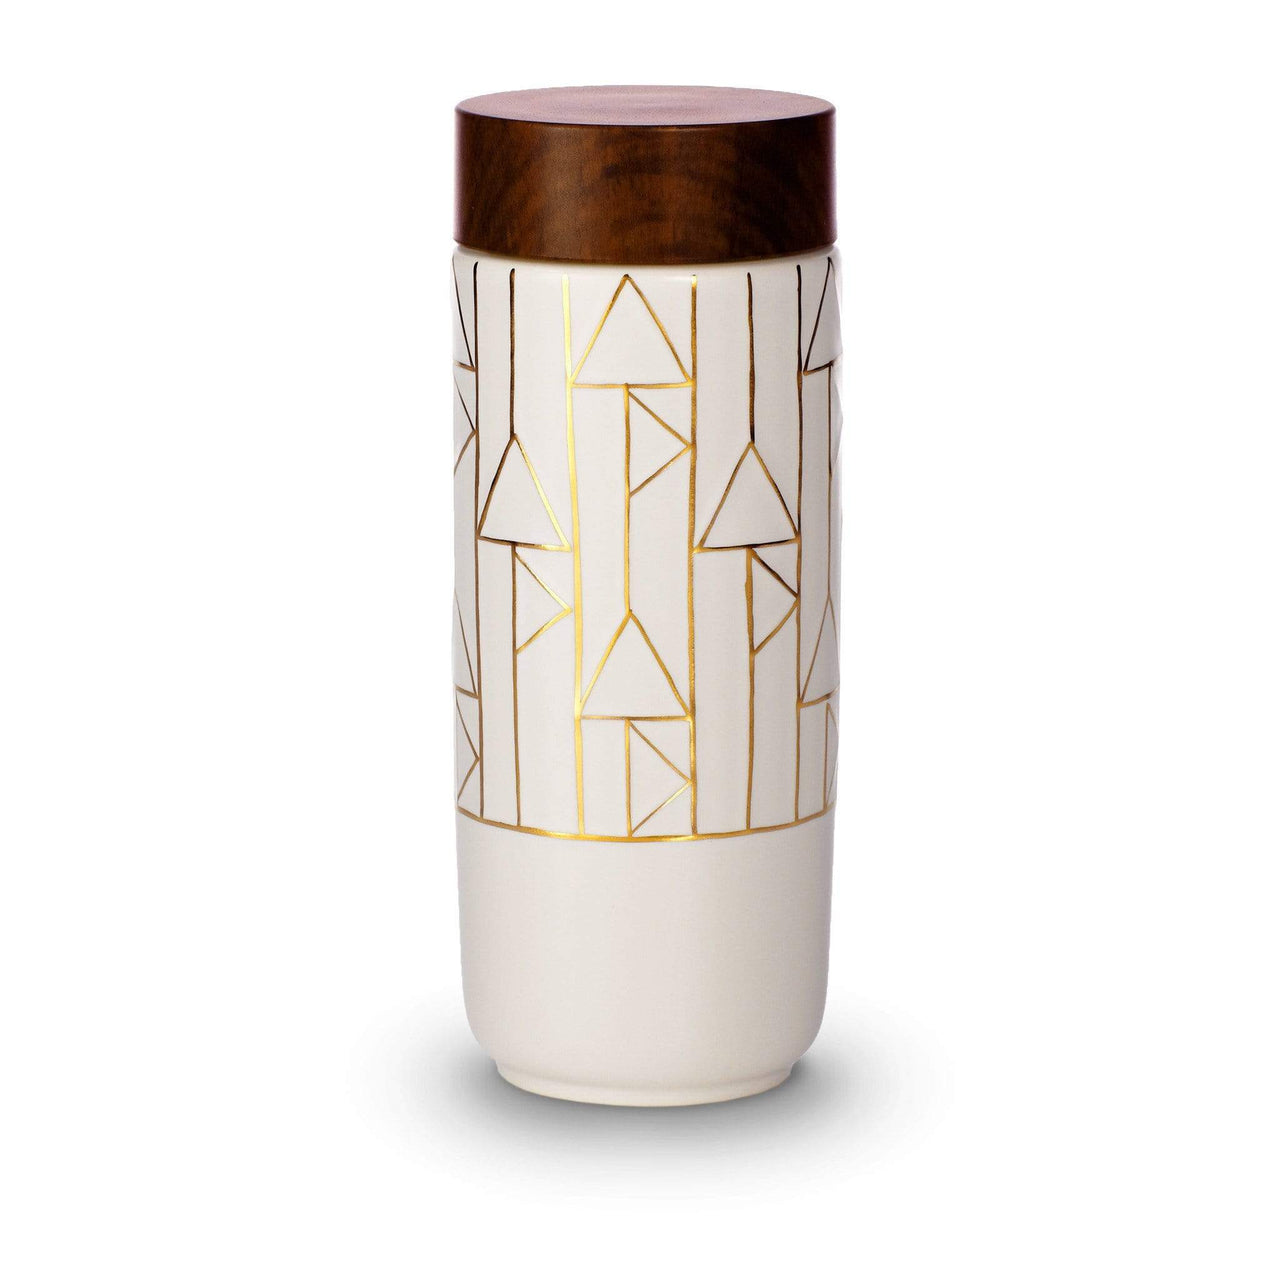 Acera Liven Flasks & Water Bottles White + Golden Line (Hand Painted) / Vertical The Alchemical Signs Gold Ceramic Tumbler